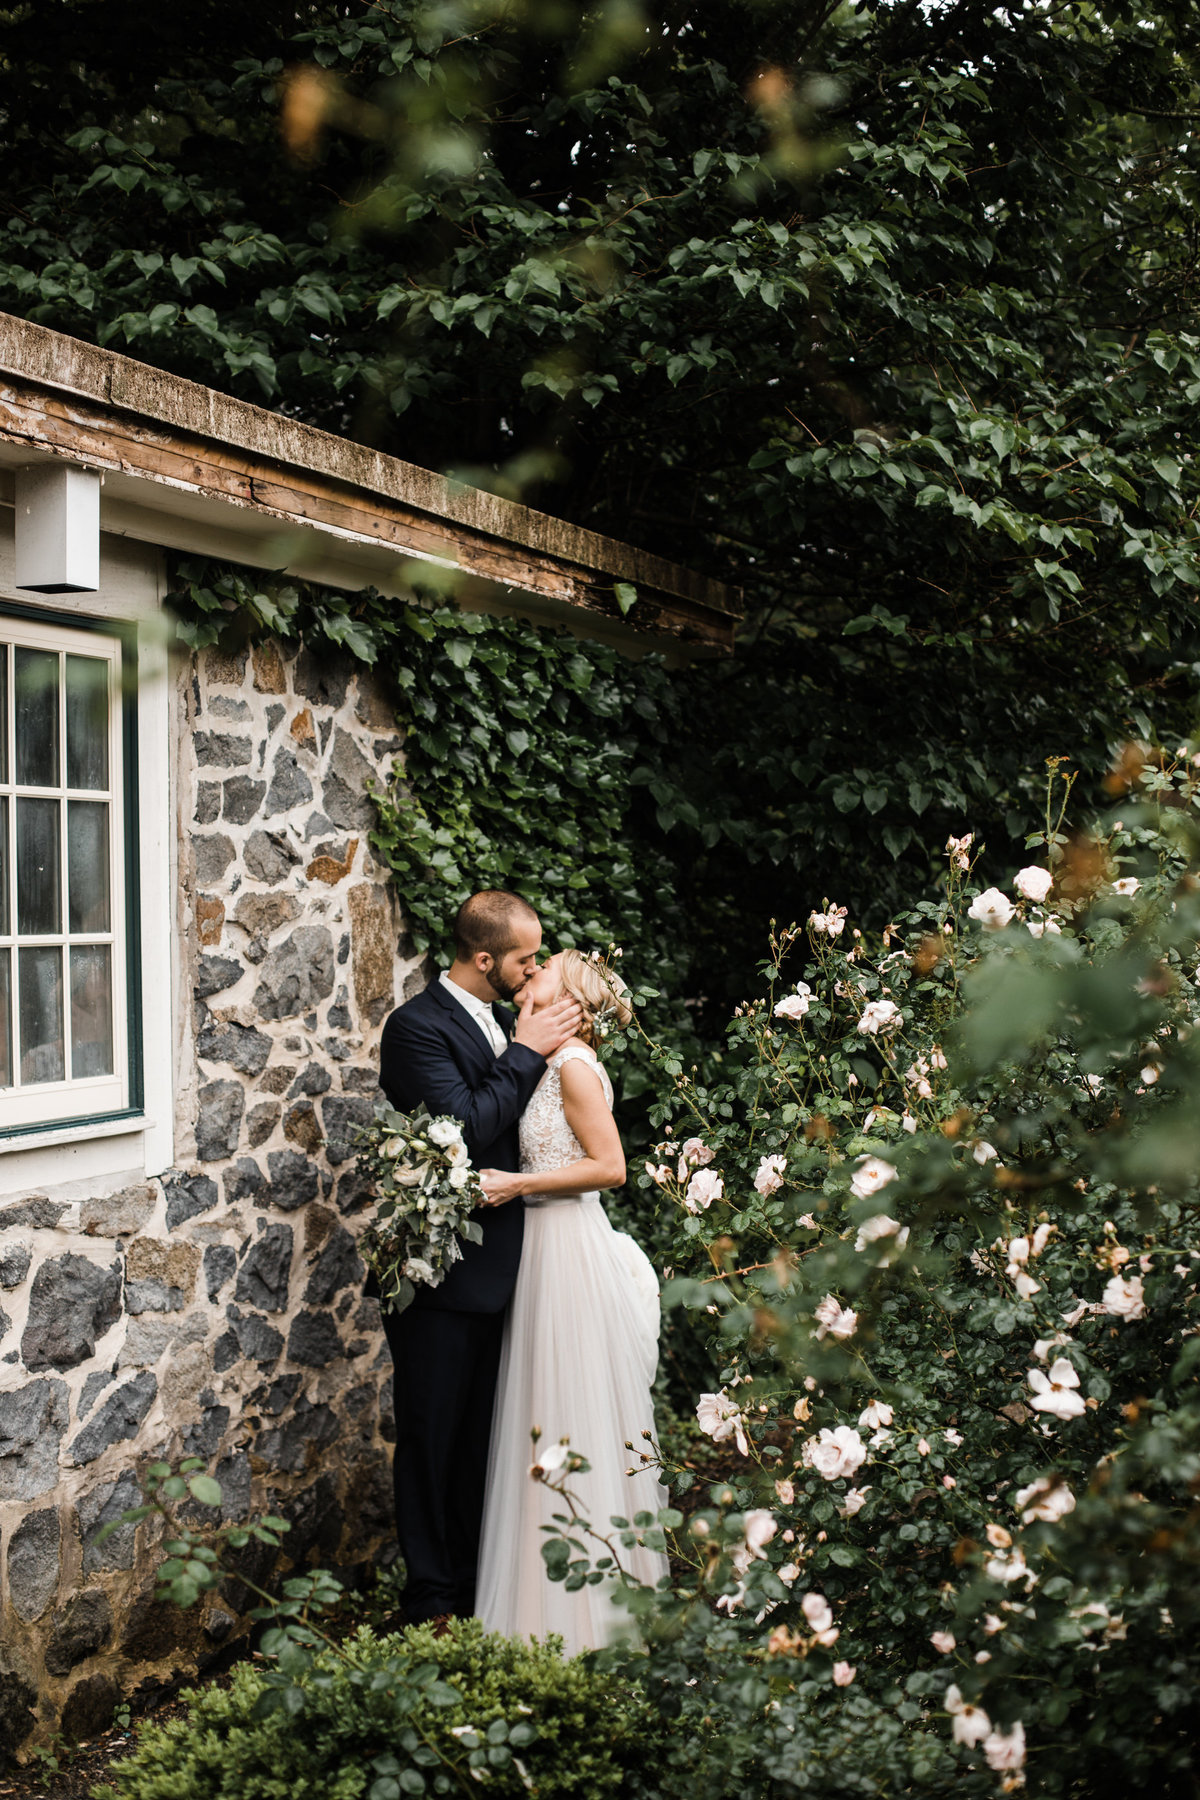 garden-wedding-carriage-house-at-rockwood-park-rebecca-renner-photography-93